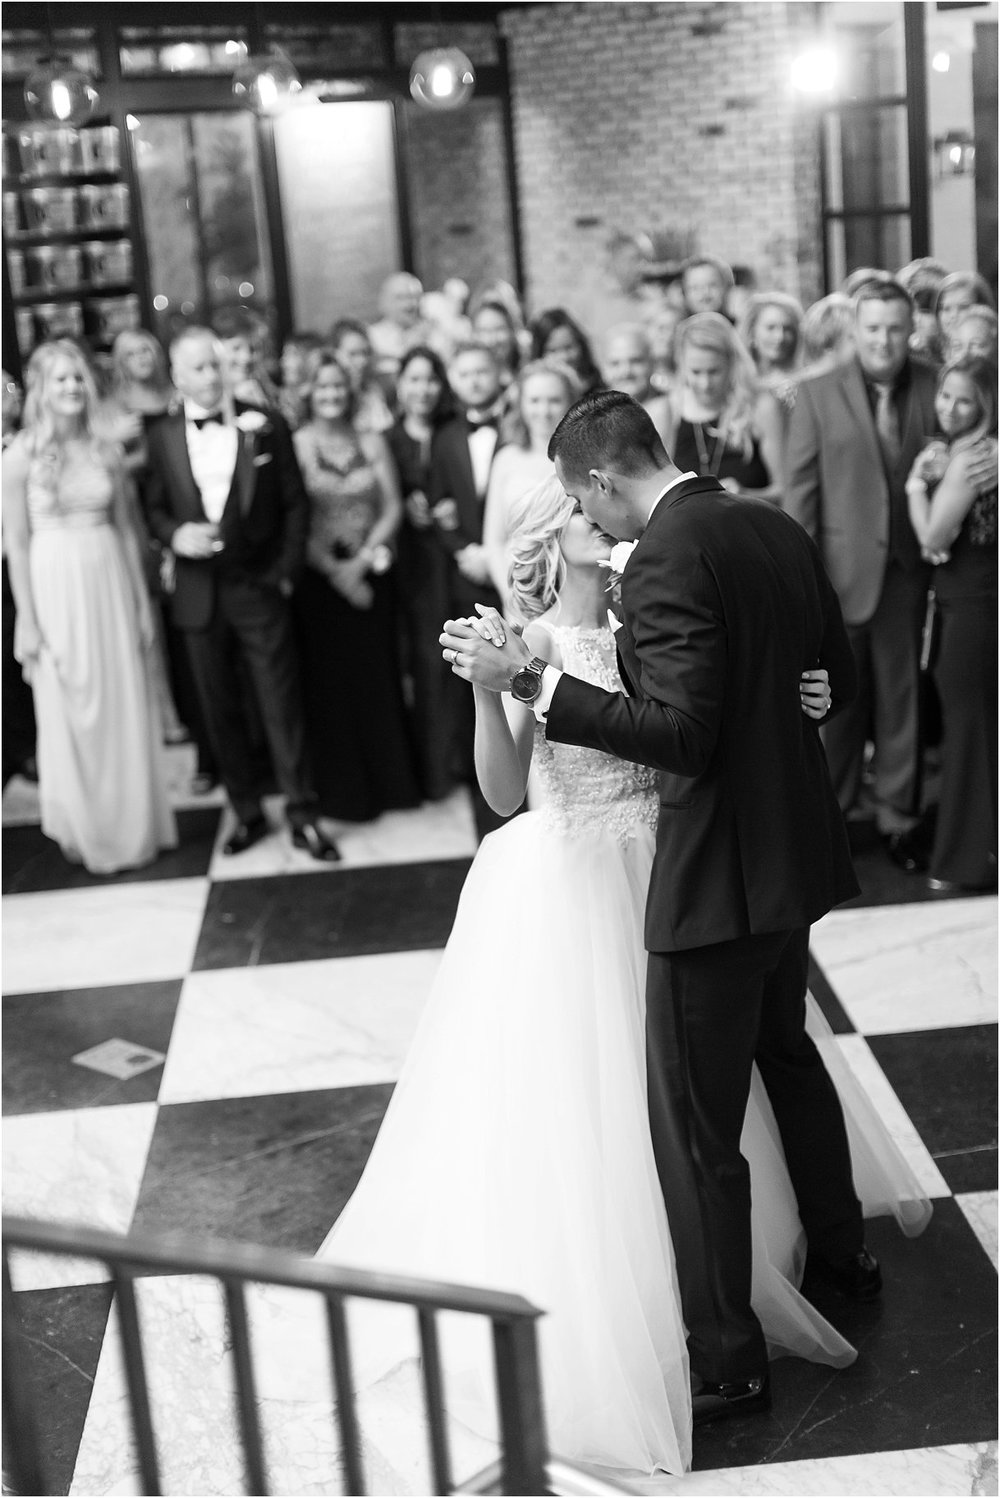 PSJ Photography- Oxford Exchange - Tampa Wedding- First Dance- Black and White Marble Floor